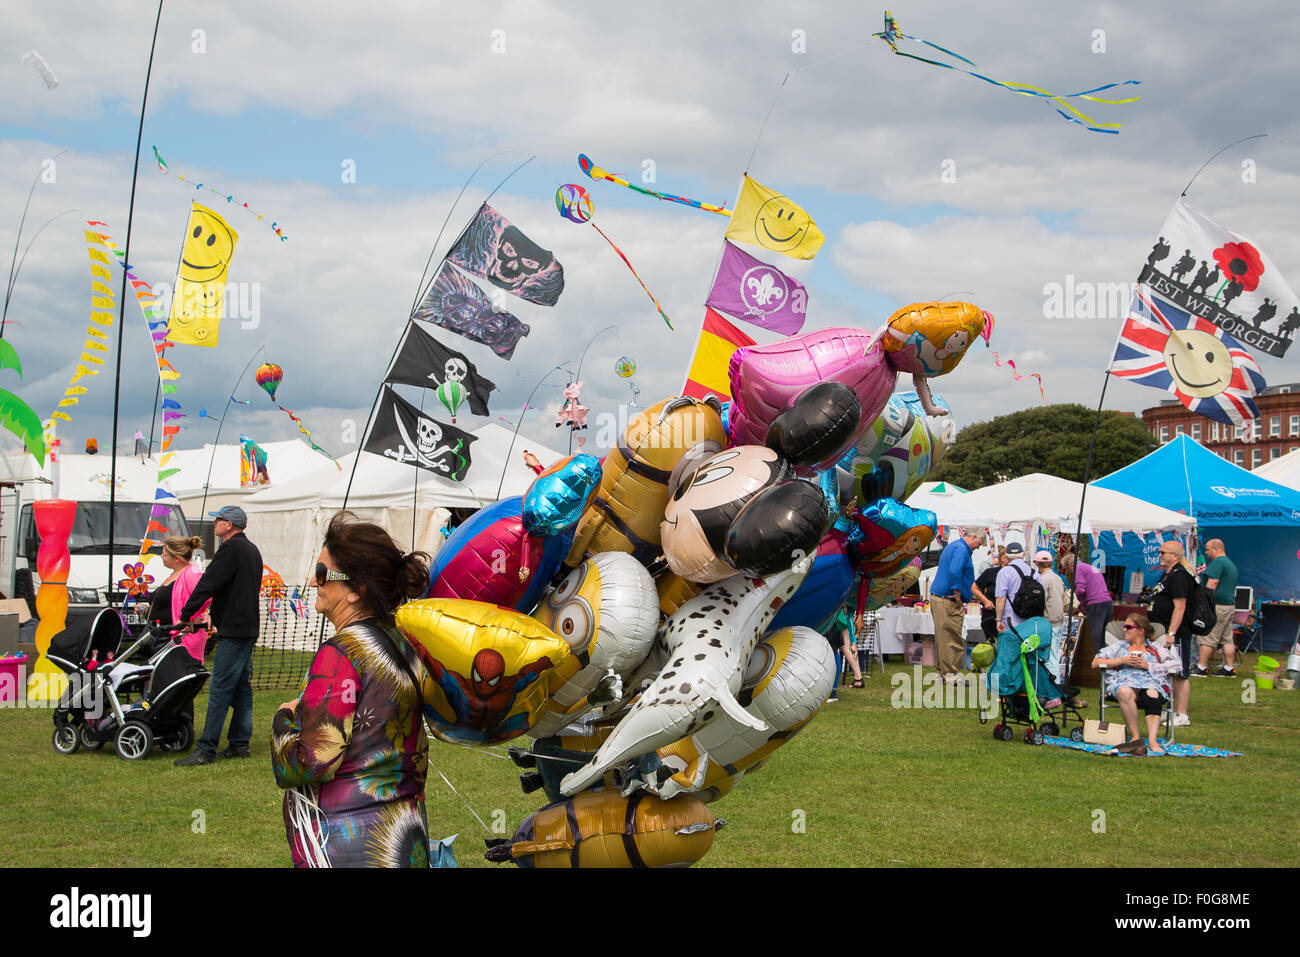 Portsmouth, UK. 15th August 2015. Hundreds turn out for the International Kite Festival in Portsmouth with large Stock Photo